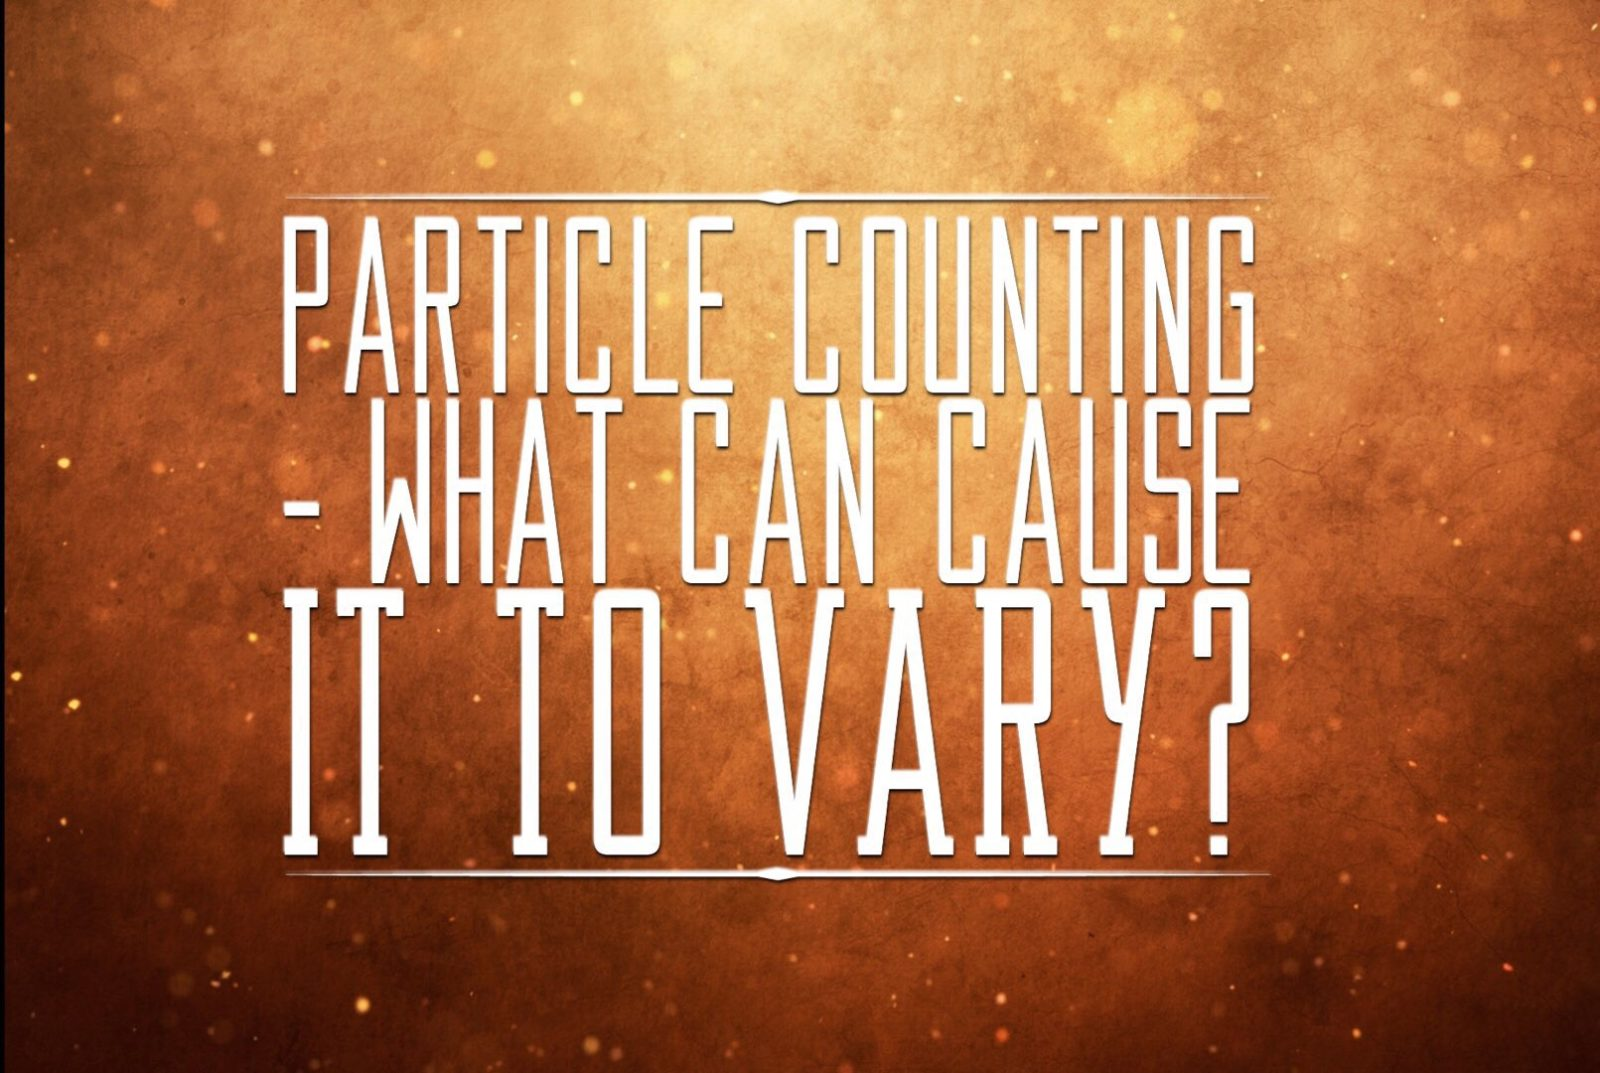 Why do particle counters differ in results?